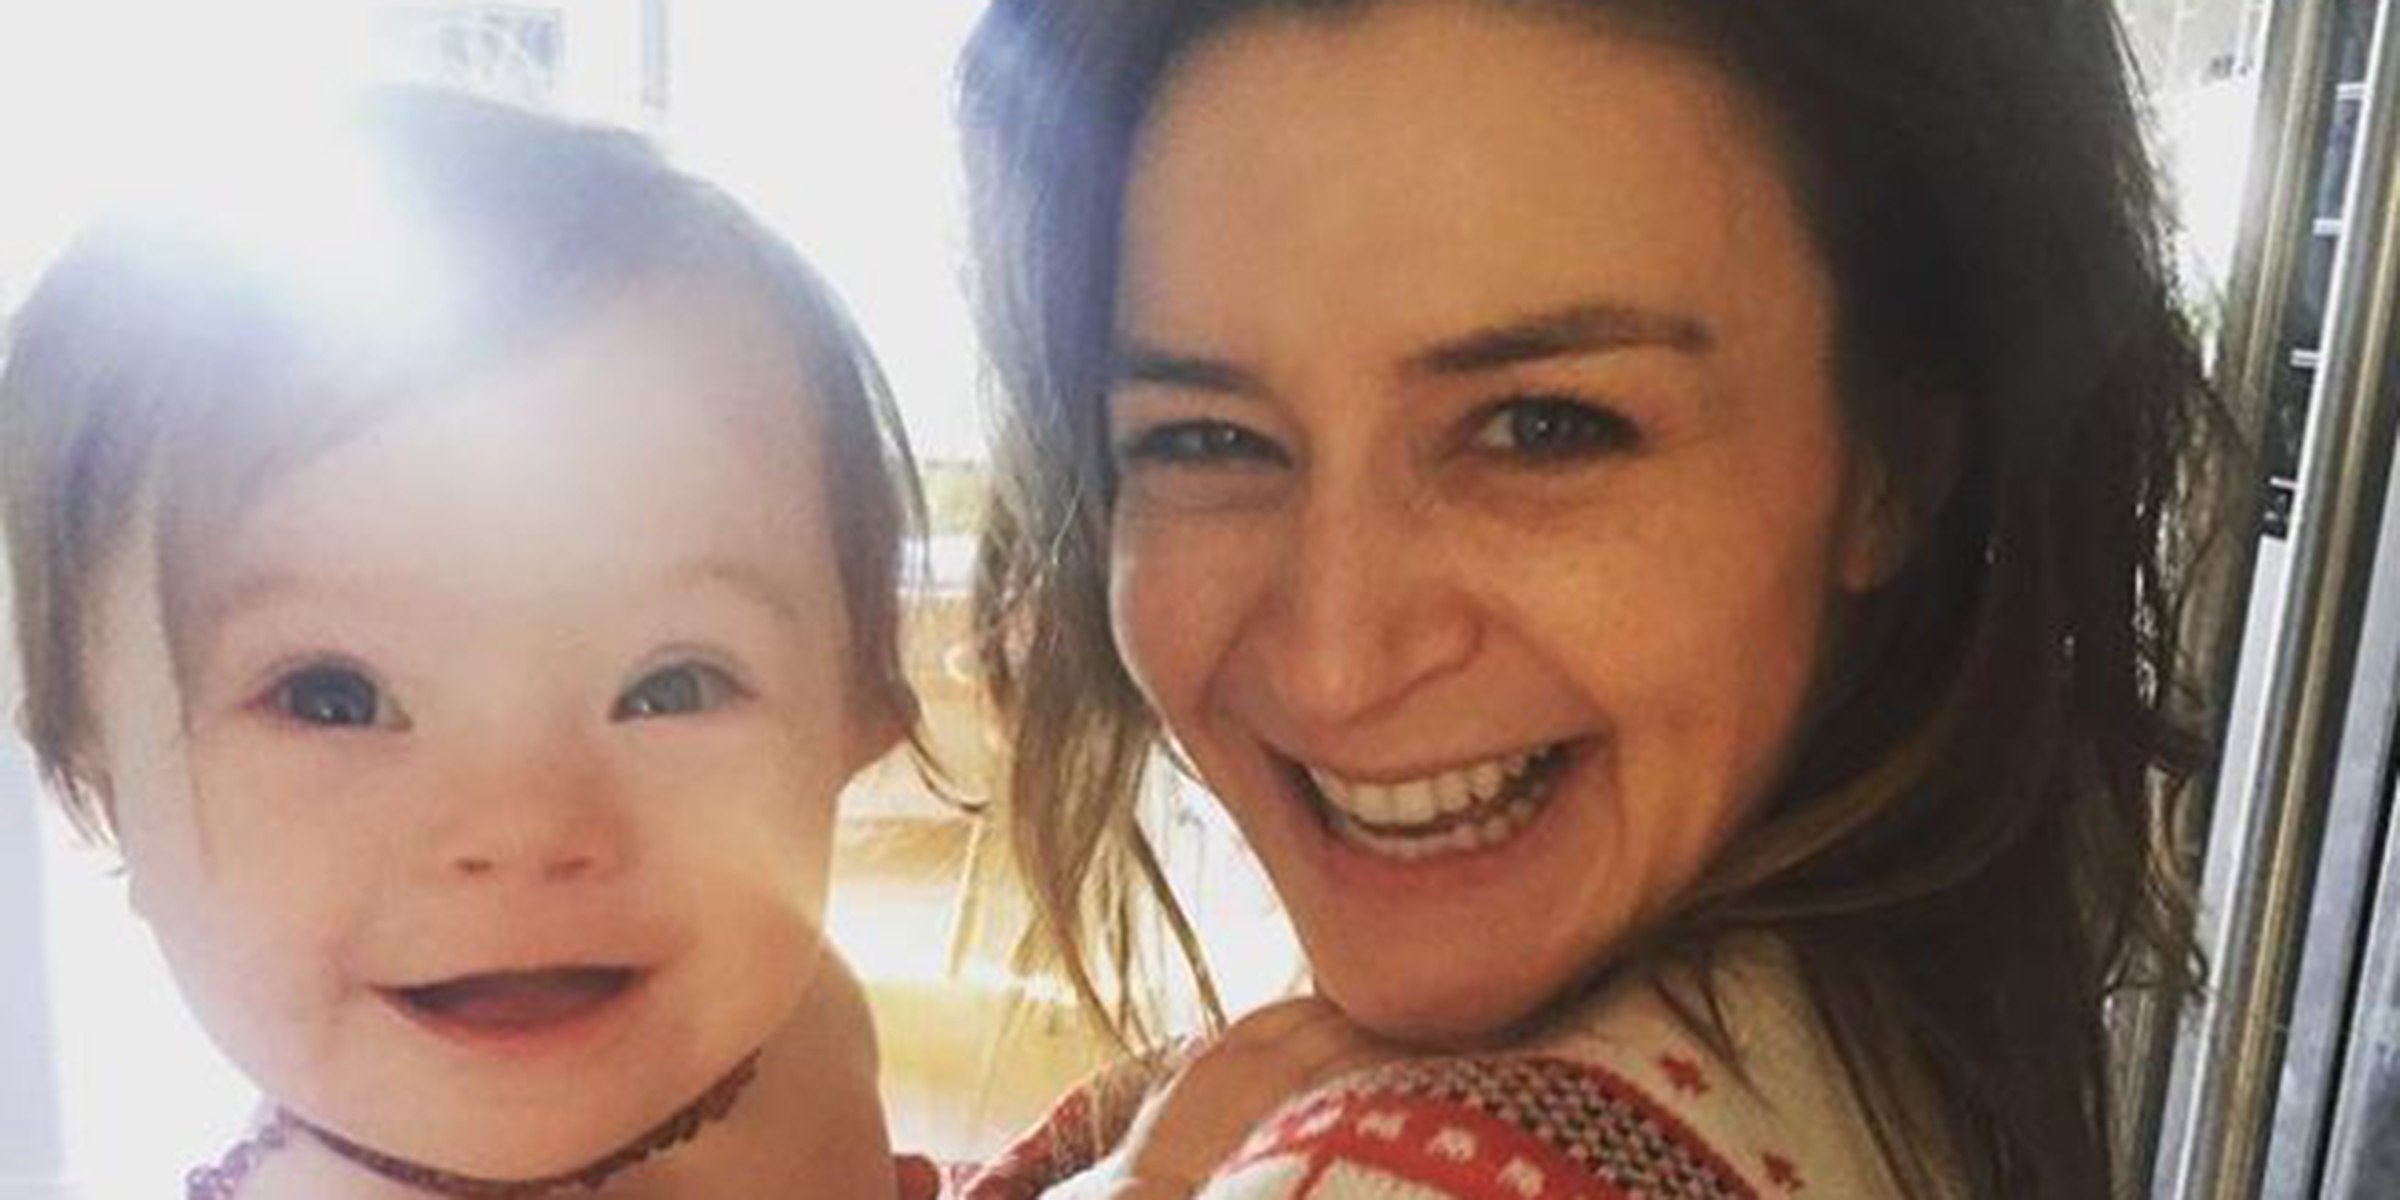 Caterina Scorsone shares photo of daughter for Down syndrome